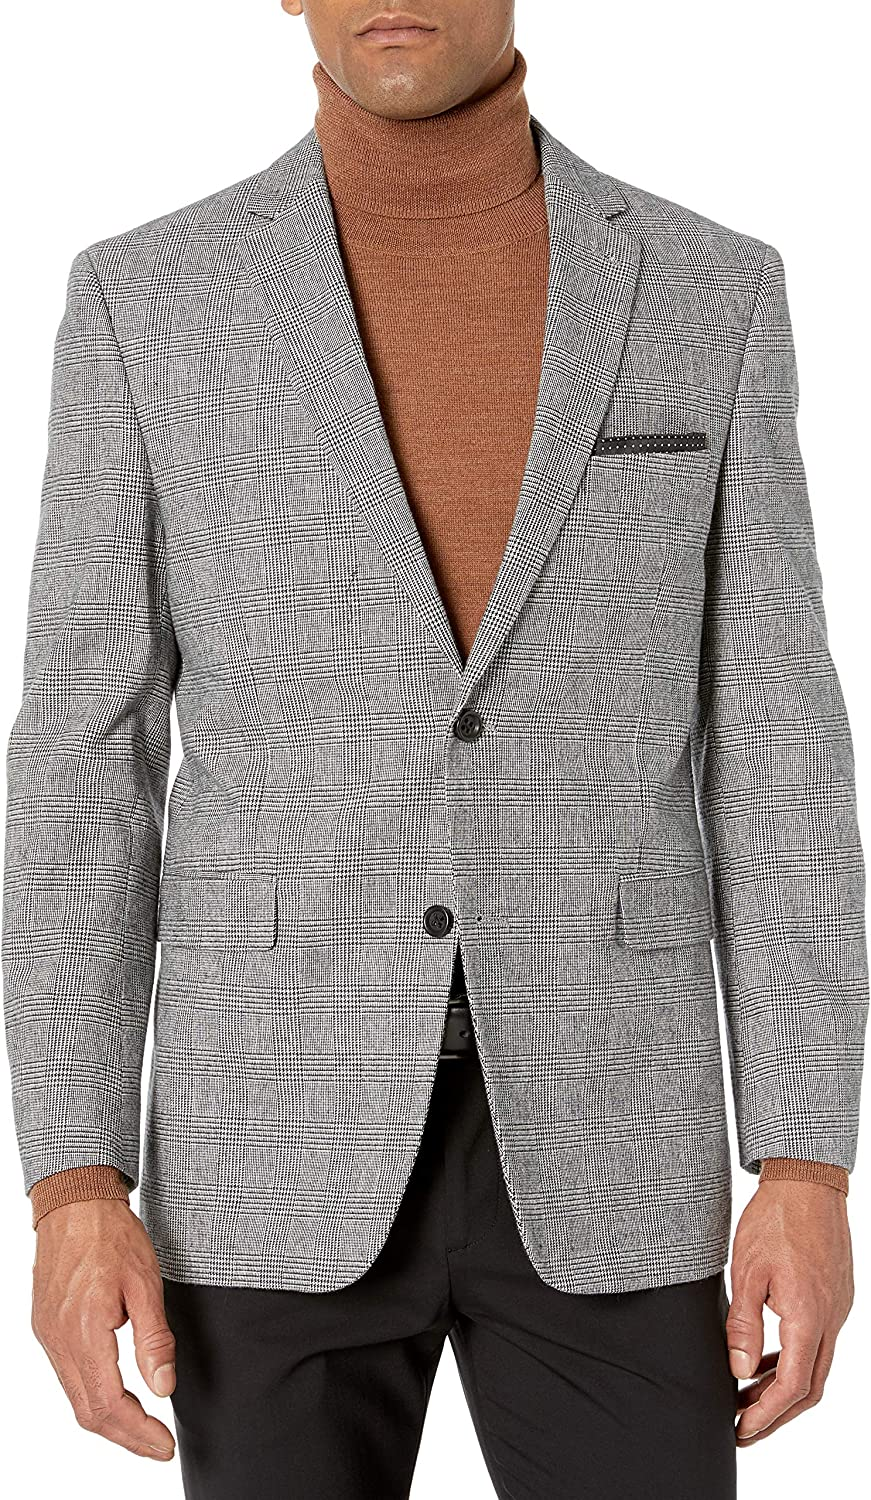 U.S. Polo Assn. Men's Updated Modern Side Vent Sportcoat